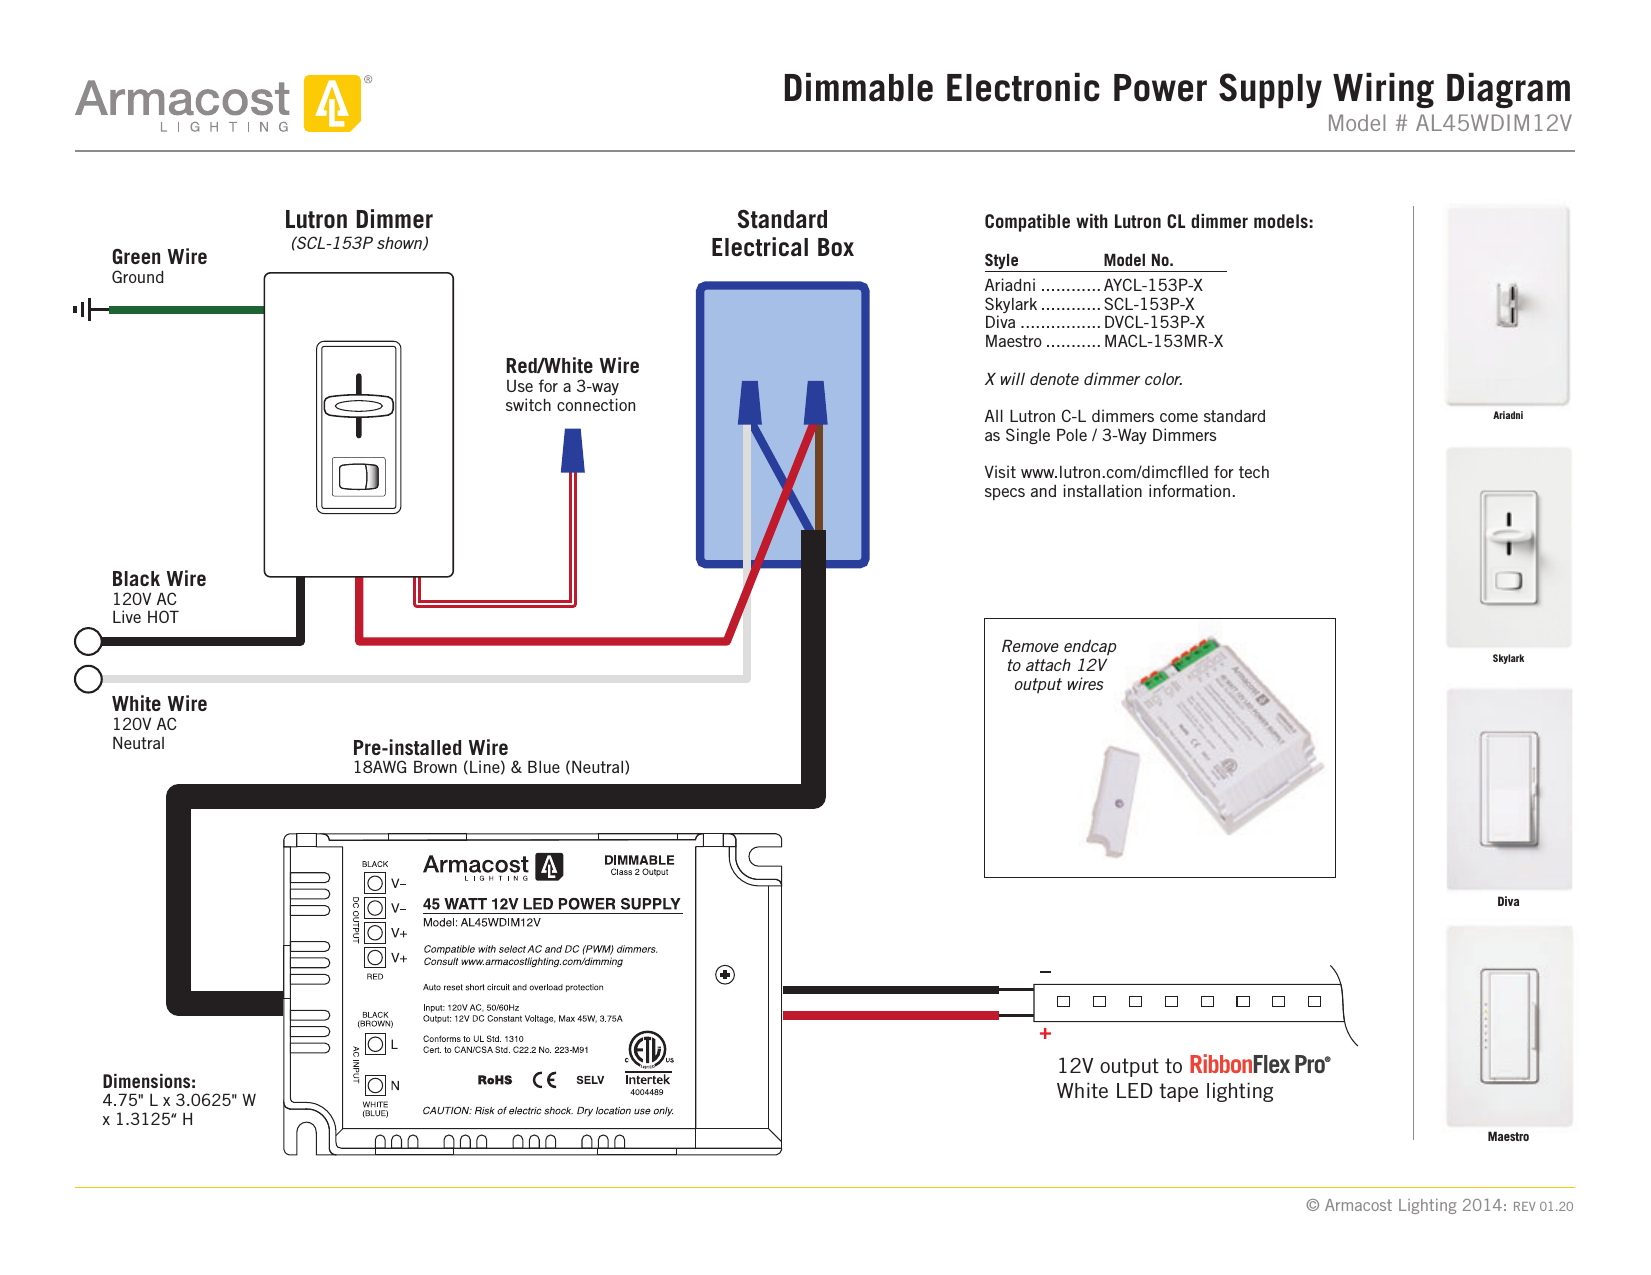 lutron led dimmer wiring diagram Download-lutron diva cl wiring diagram Collection lutron skylark dimmer wiring diagram Unique Lutron Dimmer Switch 6-g